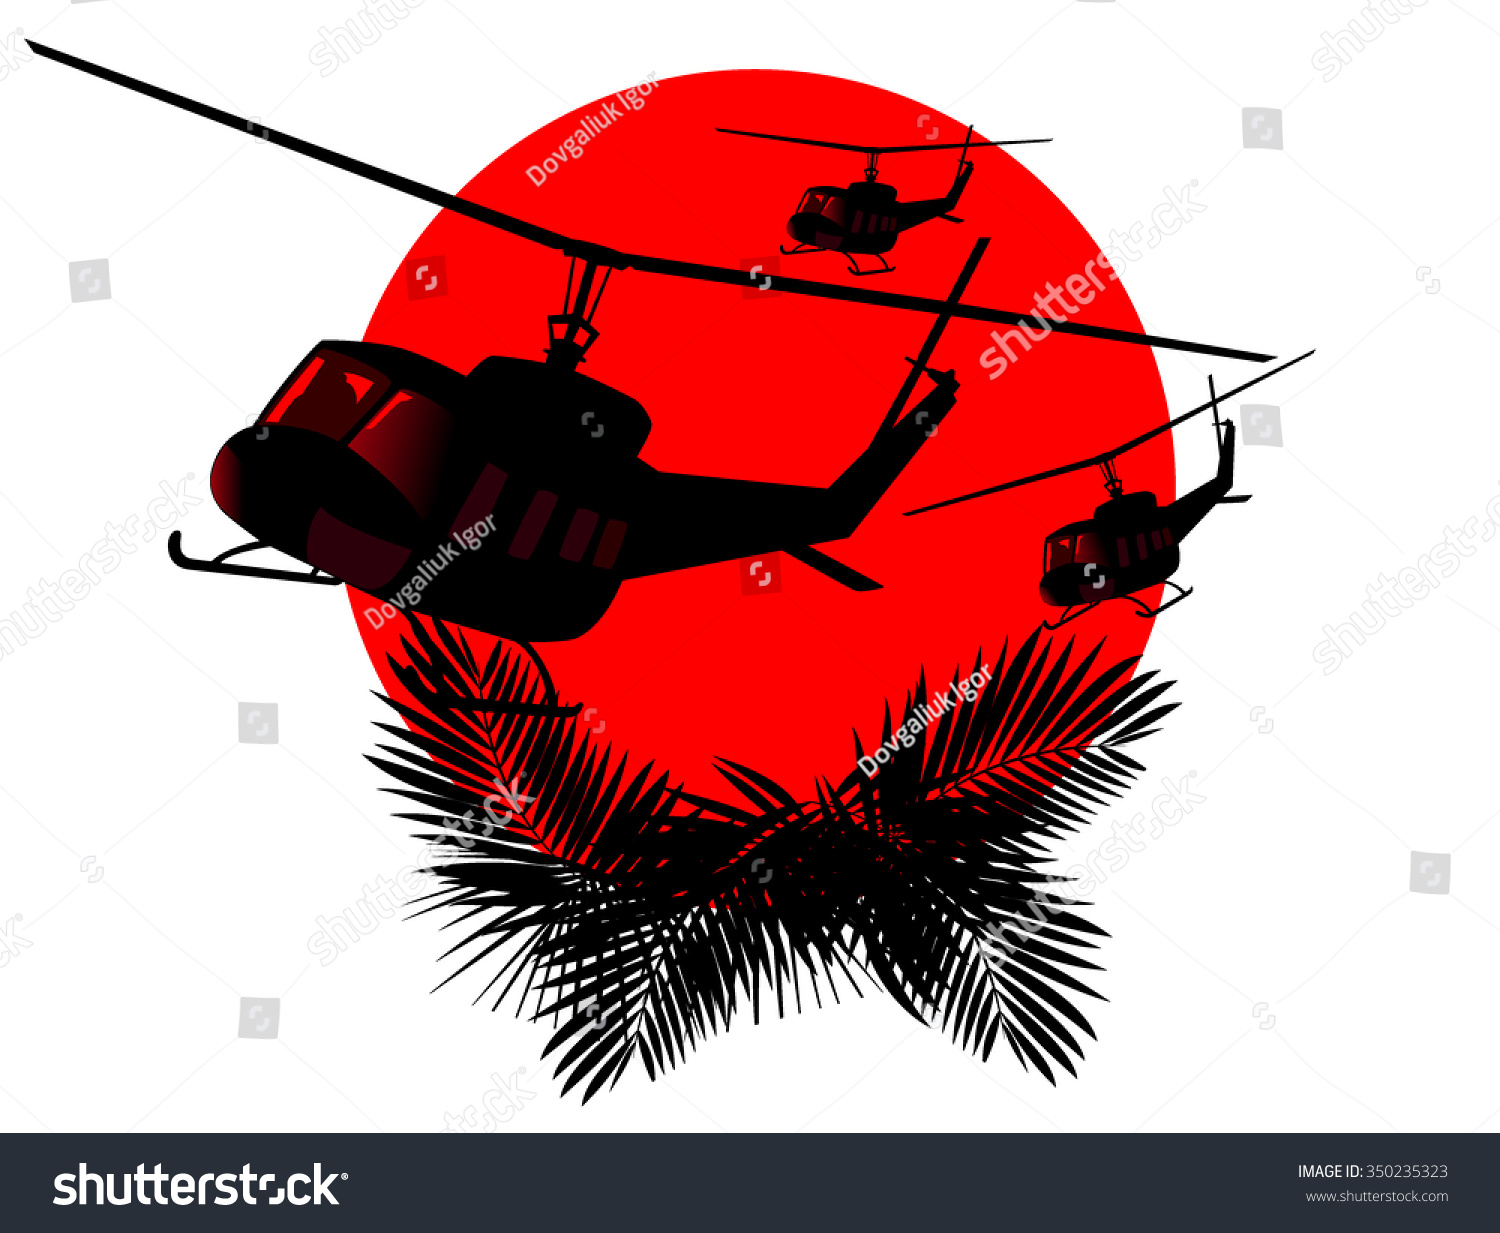 helicopter vietnam war with Silhouettes Military Helicopters On Background Red 350235323 on Pic Detail as well 3030 16586 moreover Silhouettes Military Helicopters On Background Red 350235323 in addition 60th Anniversary Battle Of Dien Bien furthermore Military Military Aircraft Helicopters Sikorsky S 64 Skycrane Vietnam War Us Air Force.